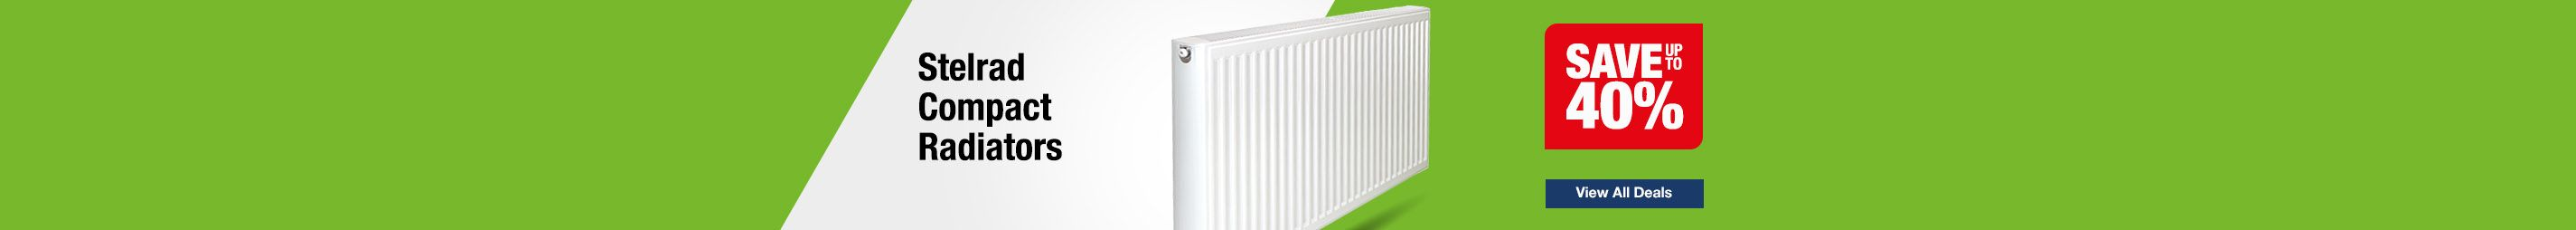 Save up to 40% on Stelrad Compact Radiators